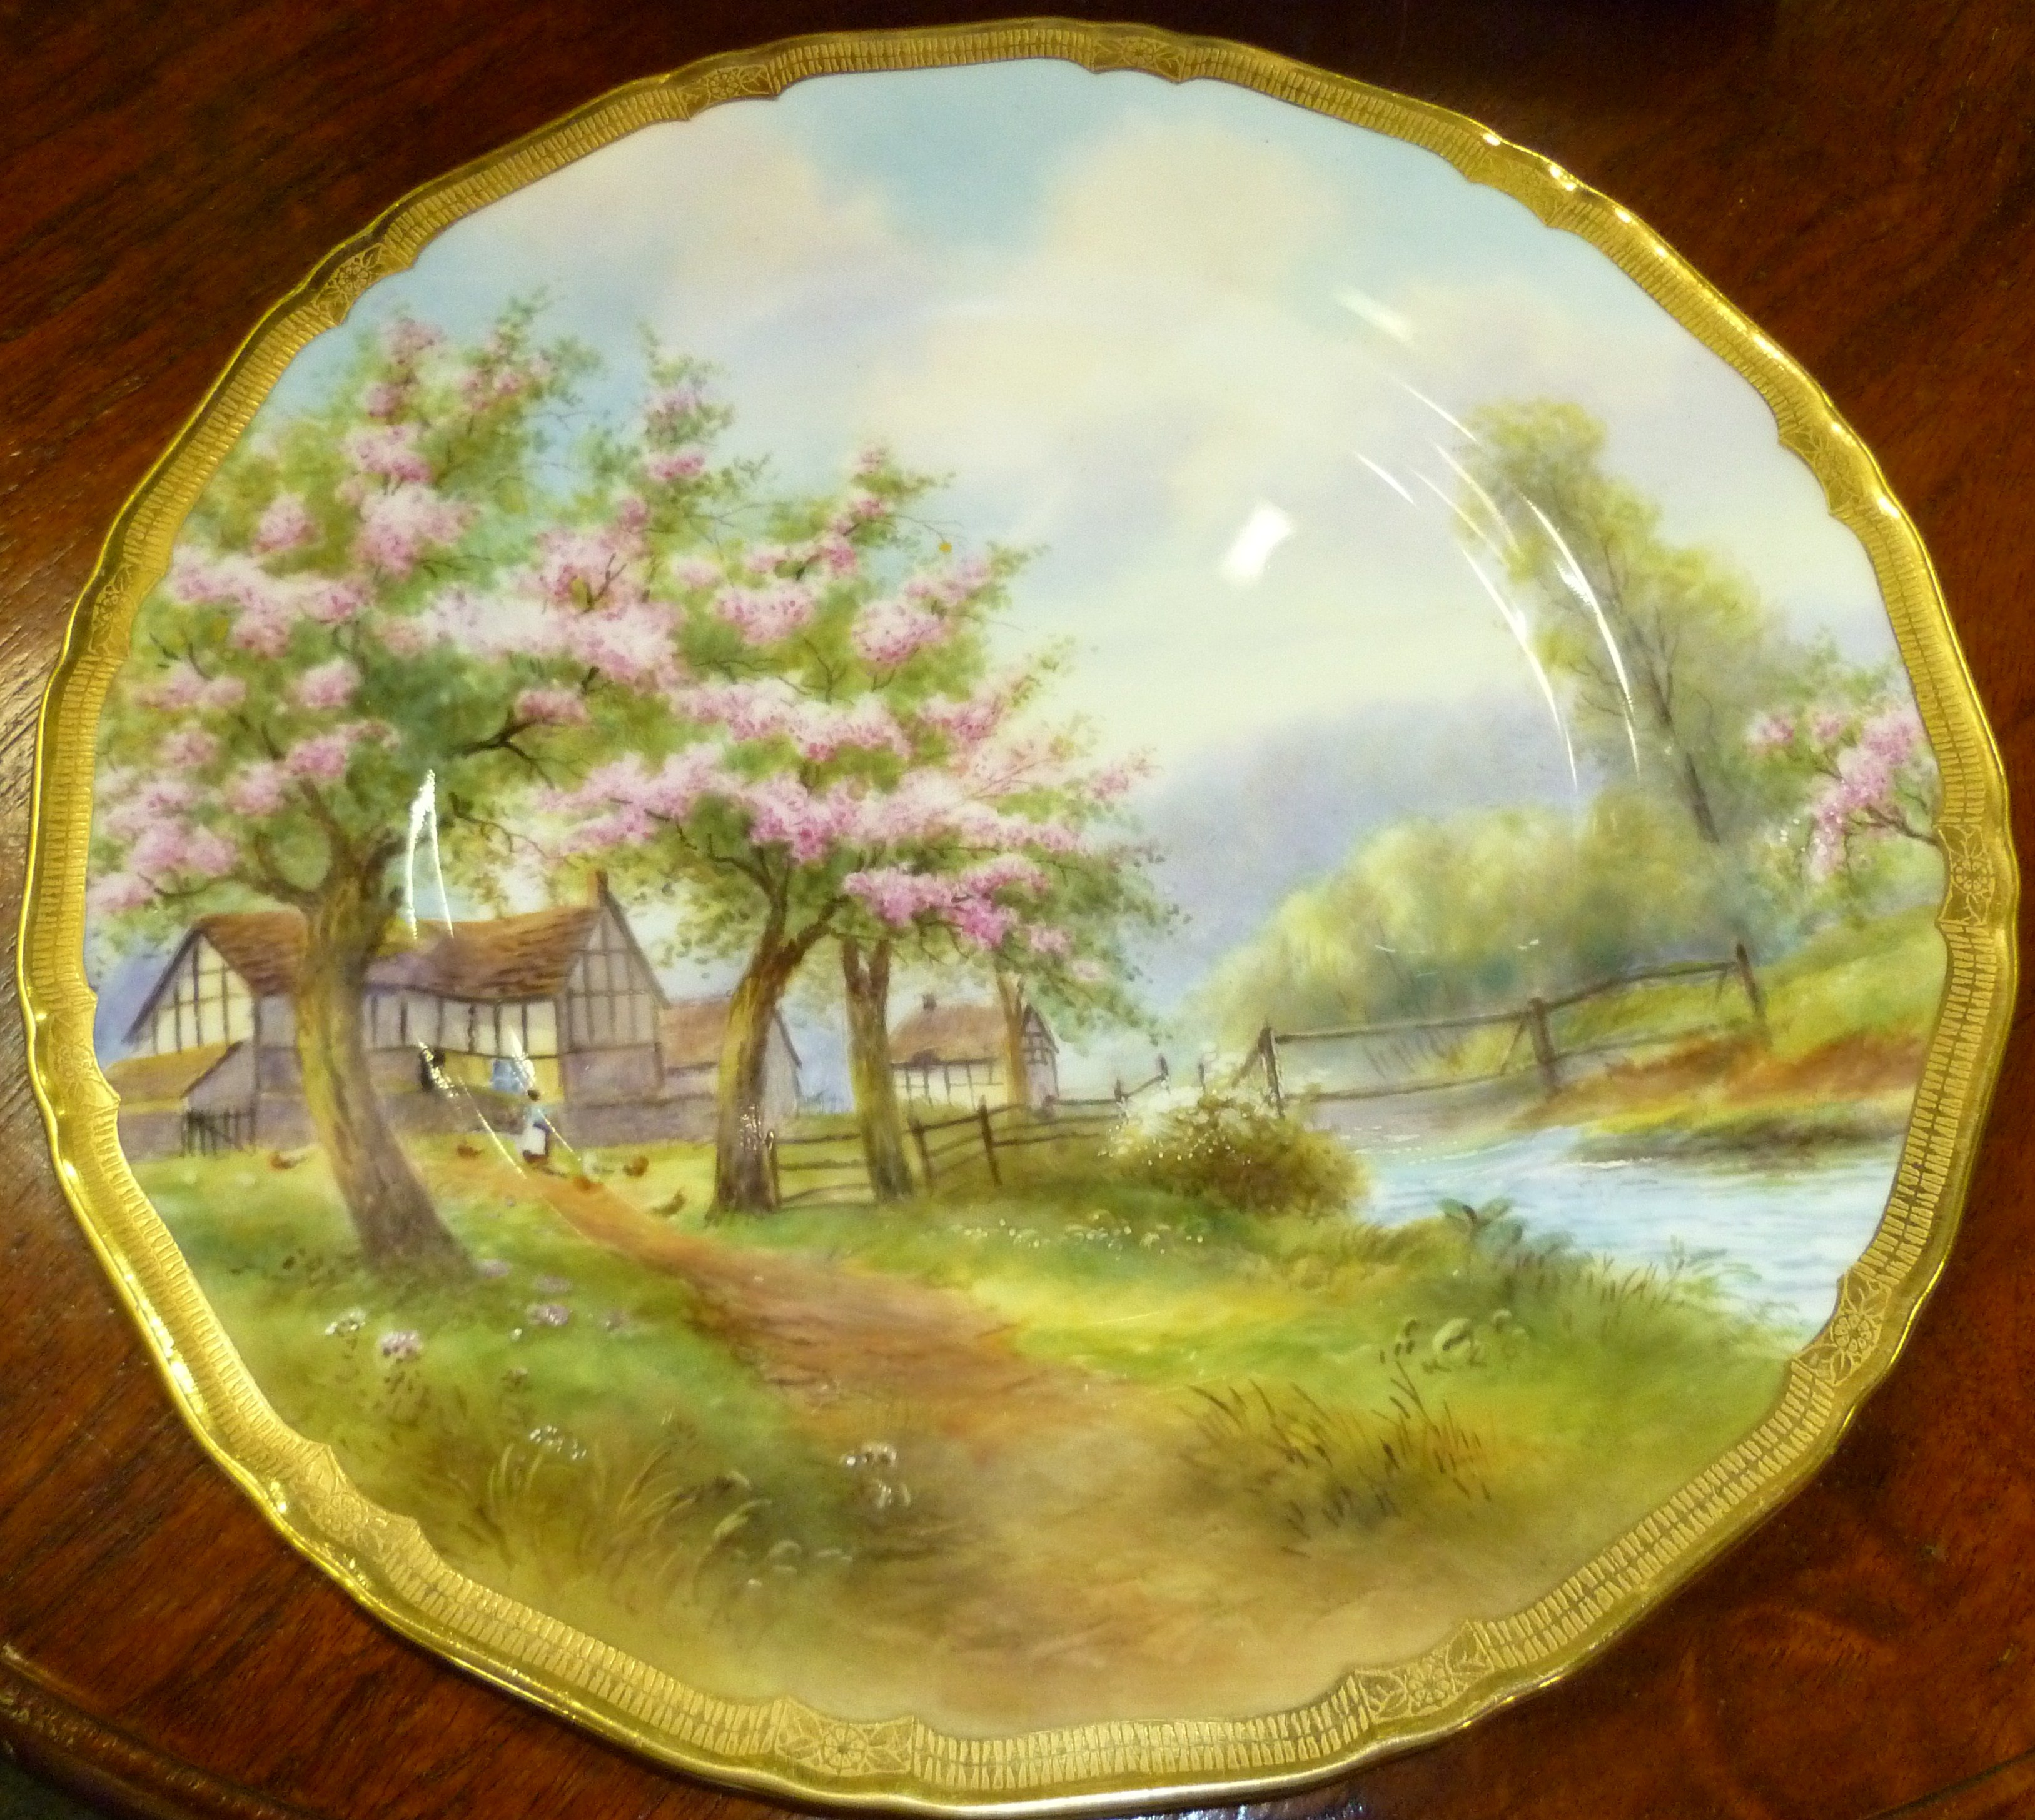 FOR SALE: Royal Worcester Cabinet Plate - Stunning and Rare